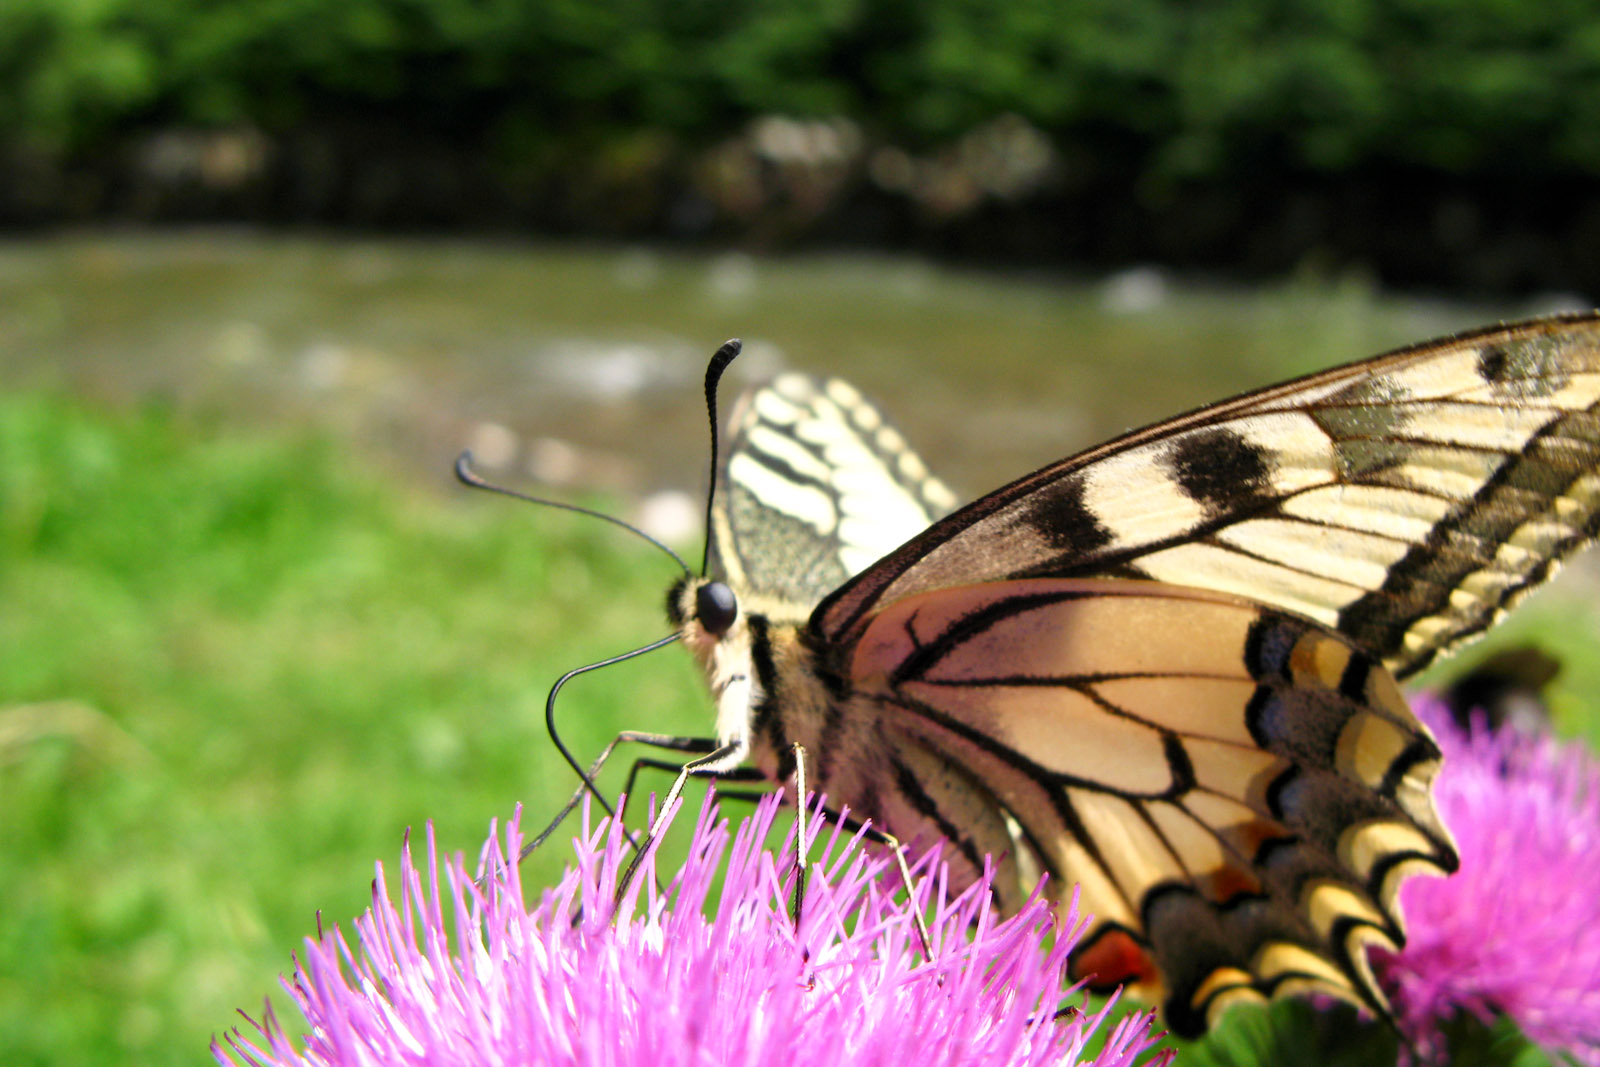 Old World Swallowtail (Papilio machaon), Małe Ciche, Poland